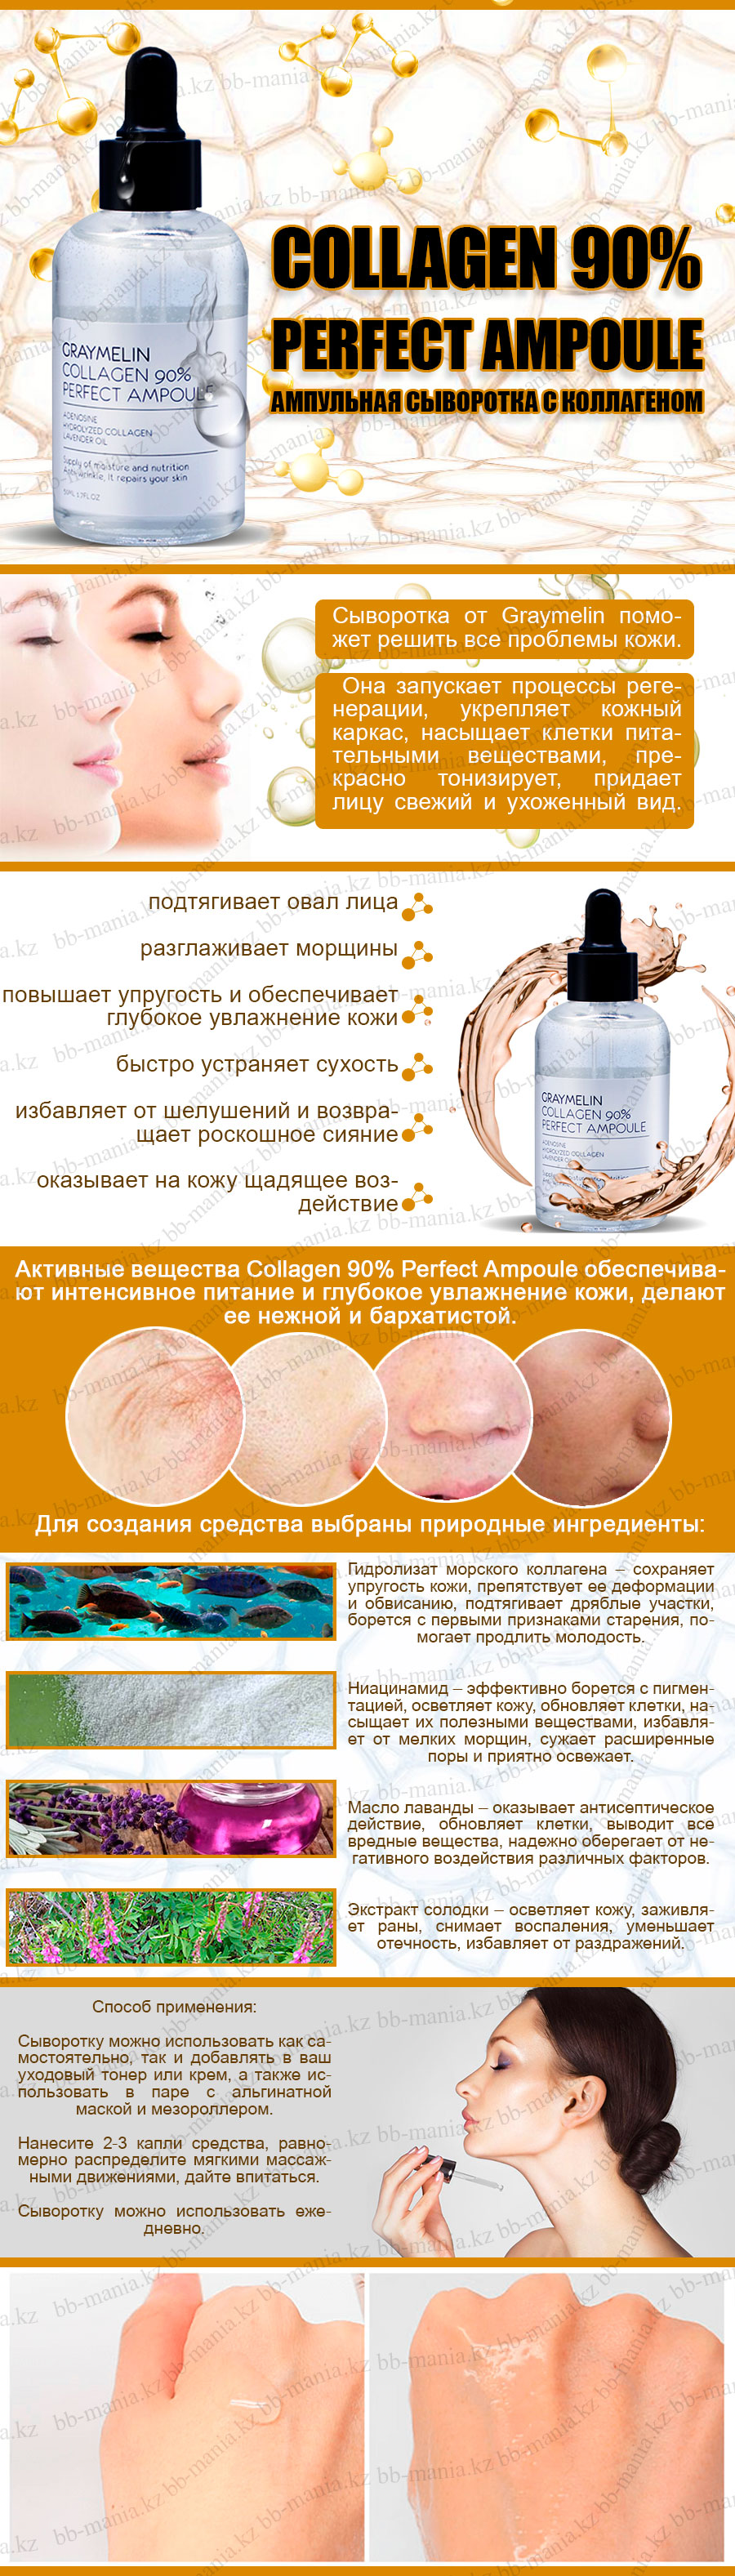 Collagen-90%-Perfect-Ampoule-[Graymelin]